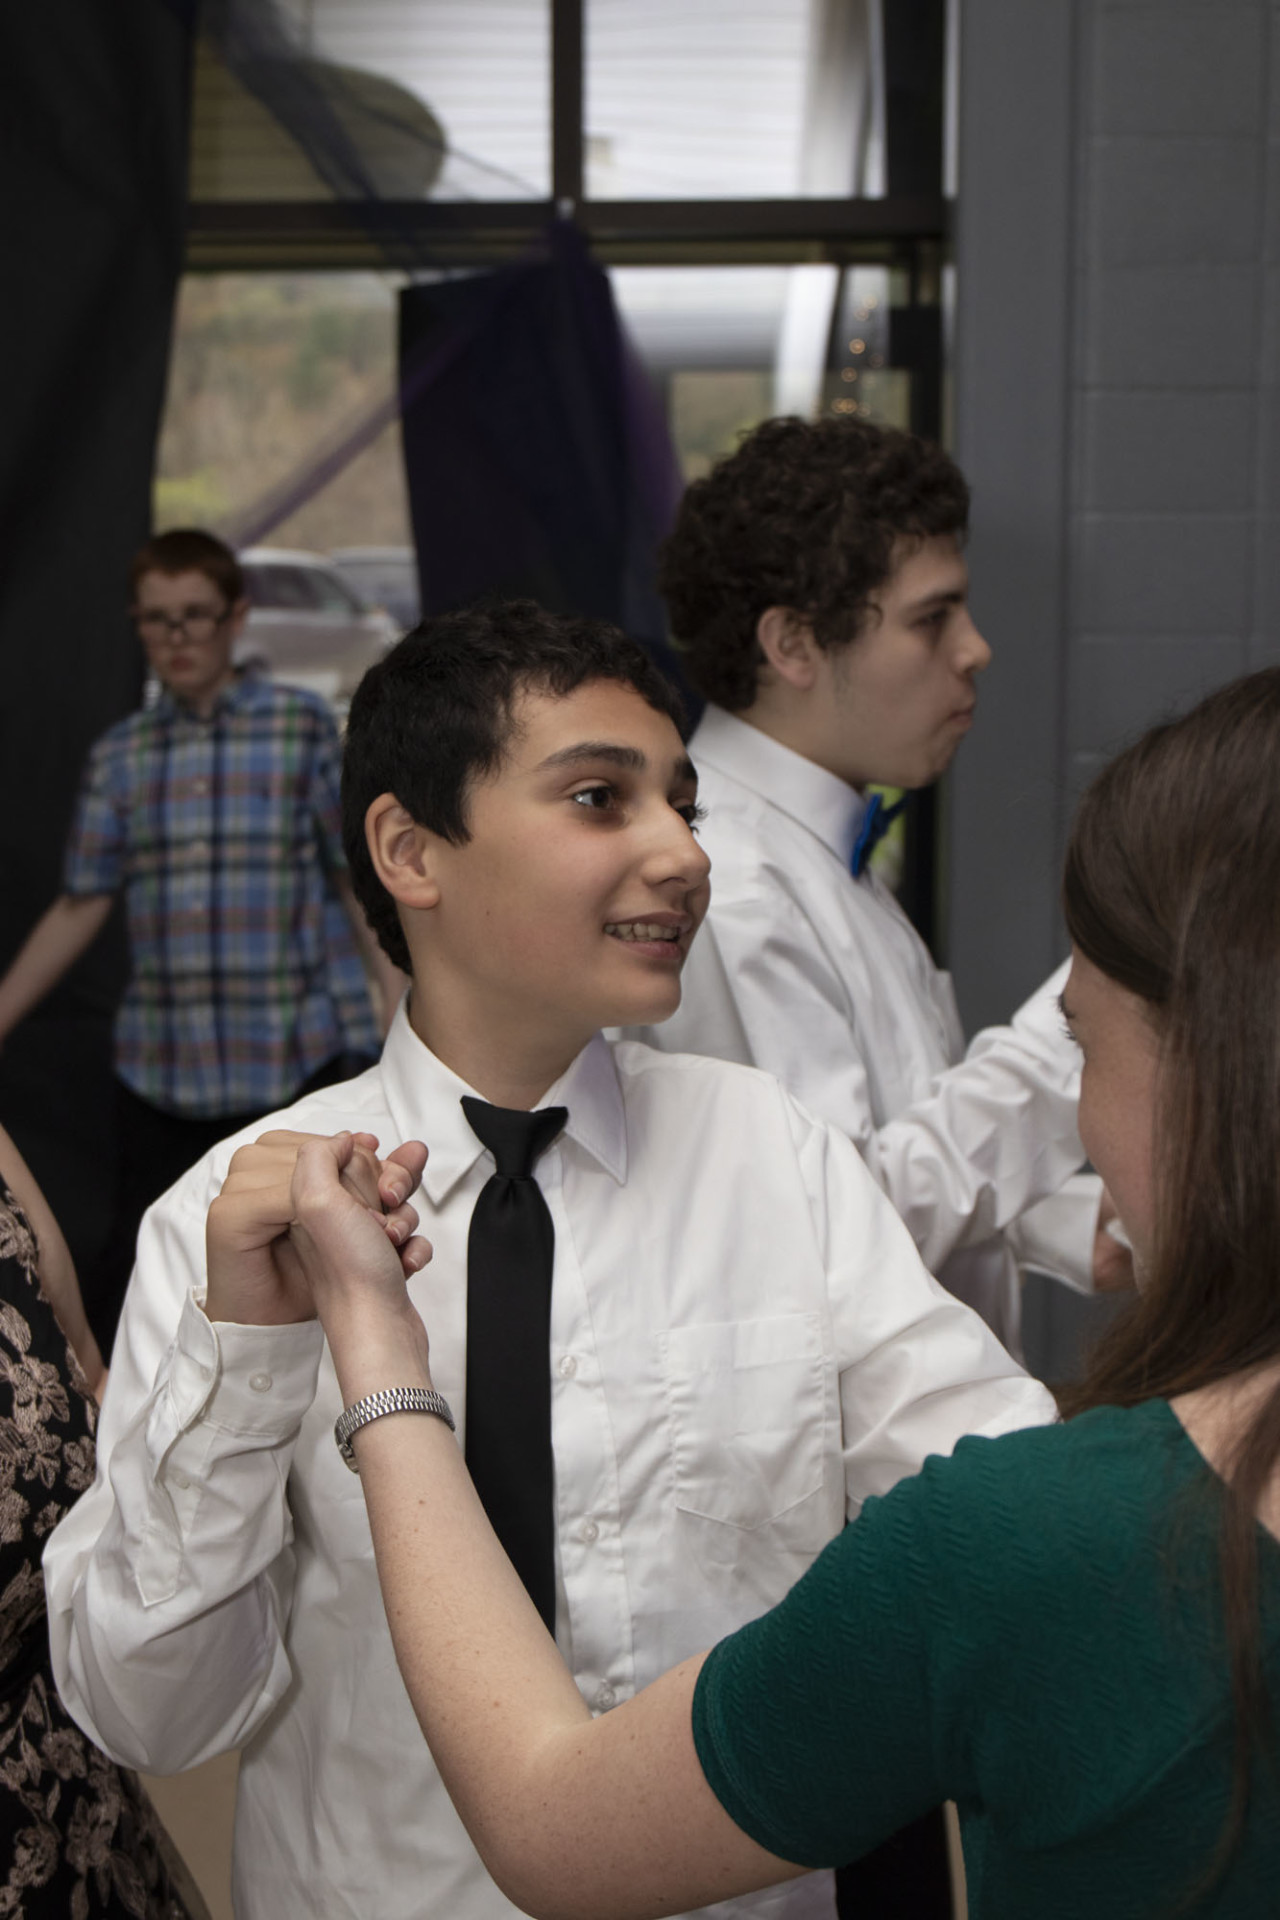 2019 Prom School  49  JPG yAuewCUe - Dance, Dance, Dance! - Take a Look Tuesday